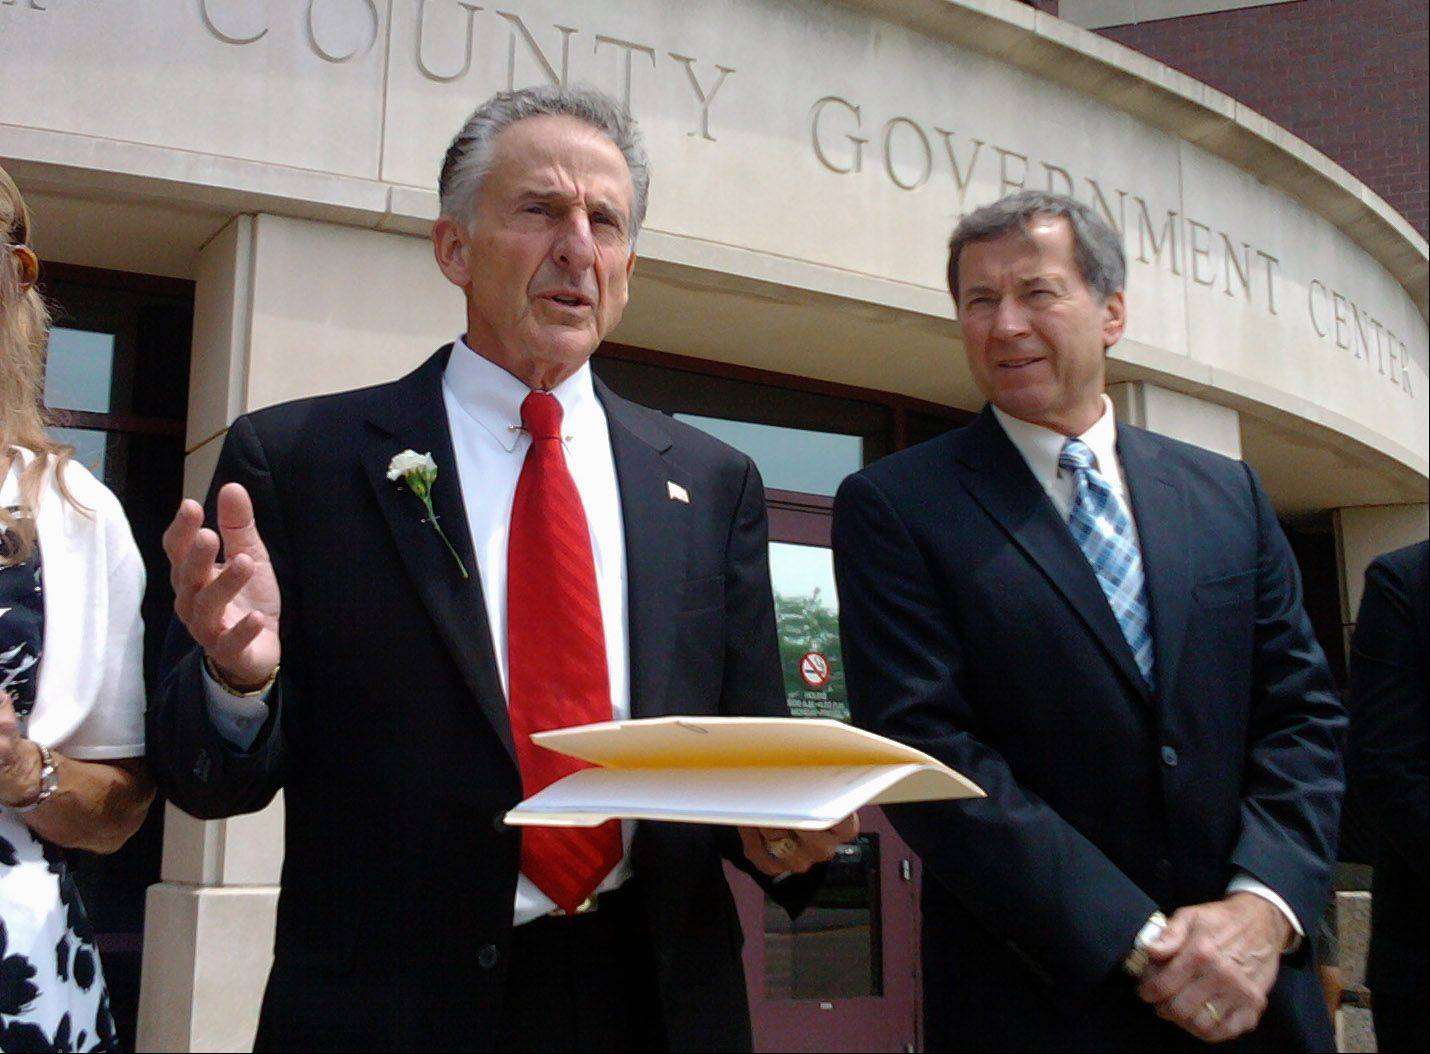 McHenry County State's Attorney Louis Bianchi, second from left, addresses supporters Tuesday outside the courthouse in Woodstock after his acquittal on misconduct charges. With him are defense attorneys Terry Ekl and Tracy Stanker.